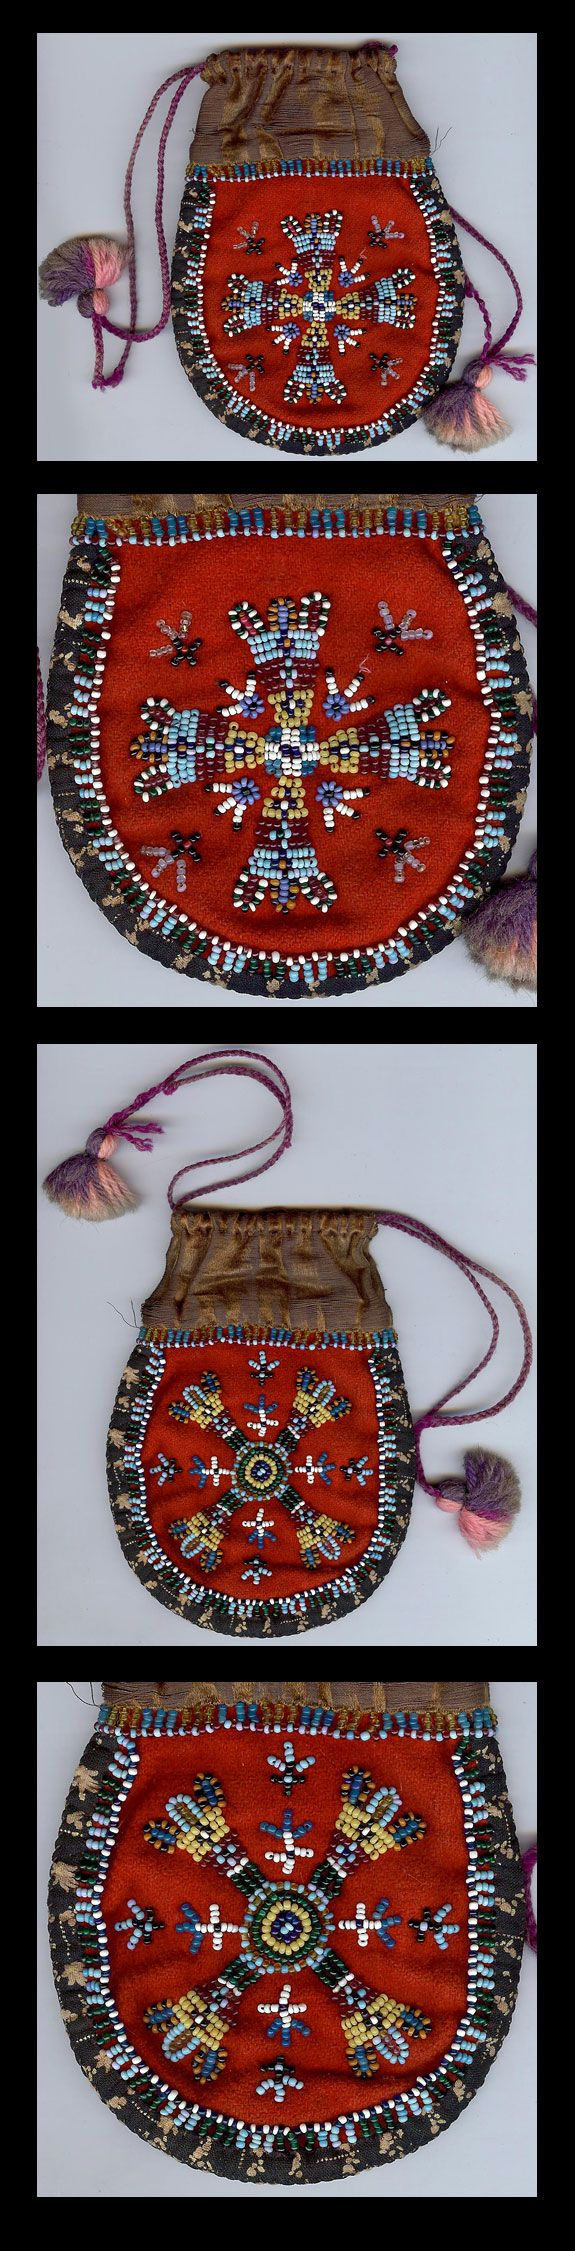 Antique ATHABASCAN Indian Beaded Drawstring Pouch